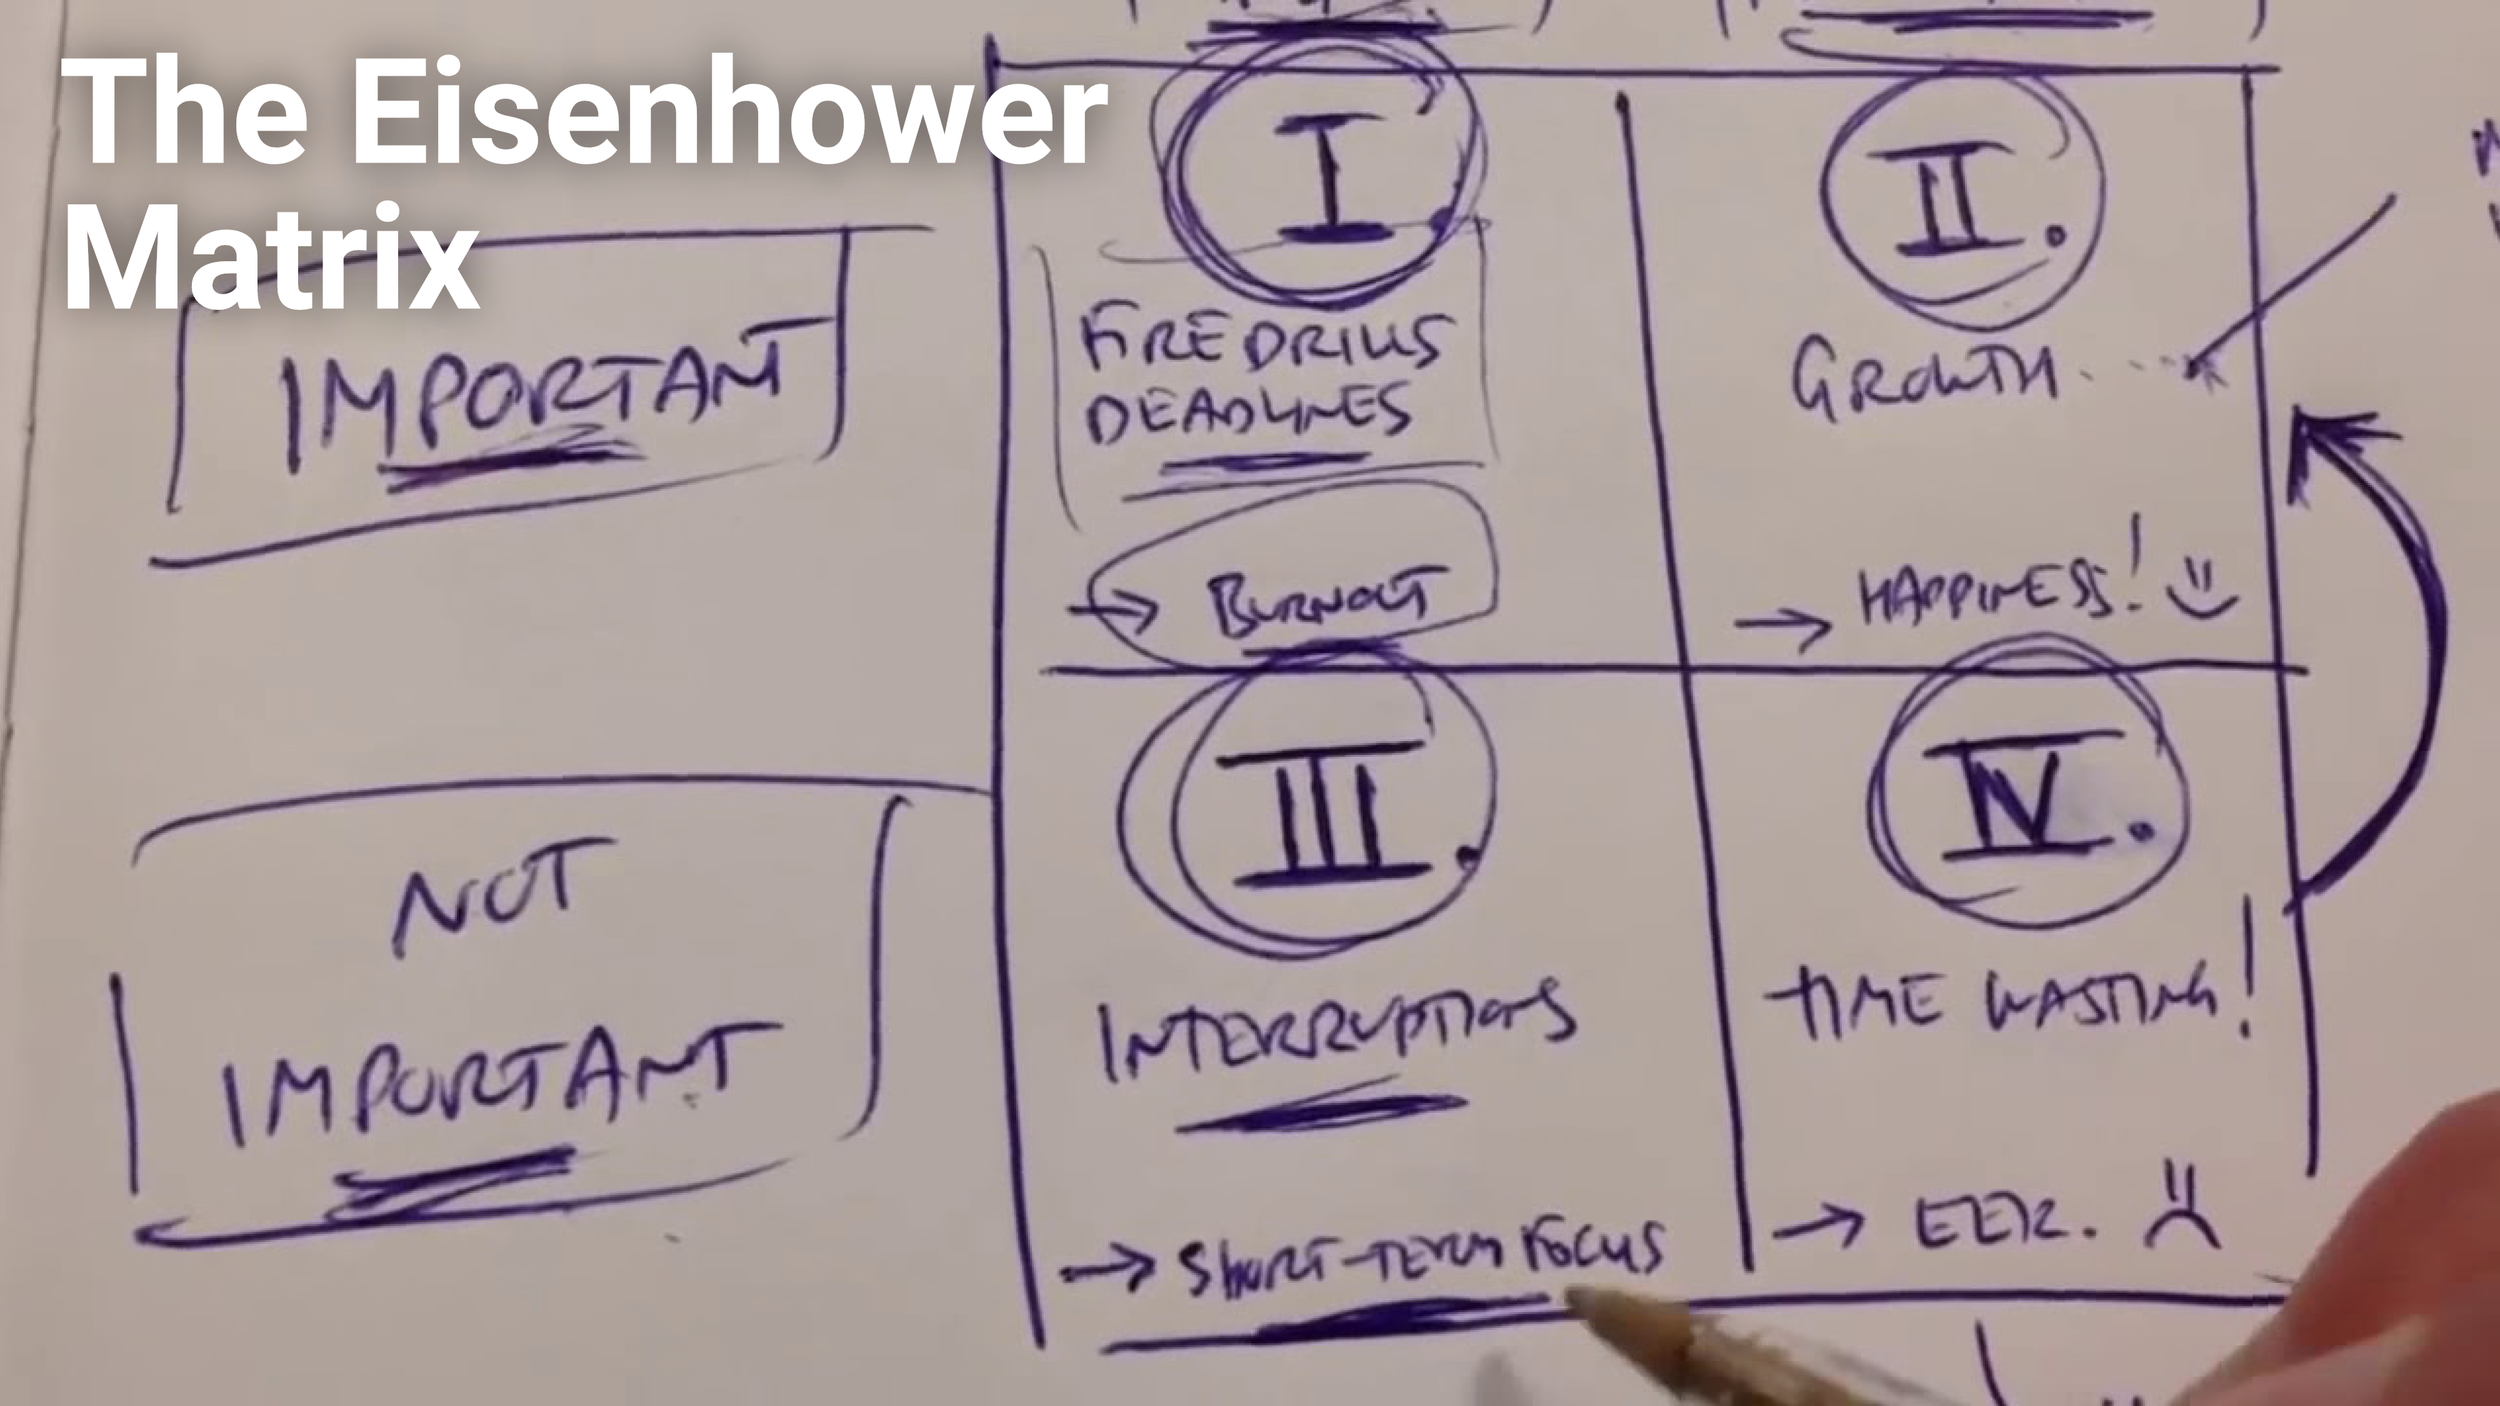 097_Prioritizing your work with the Eisenhower Matrix_Page_02.png